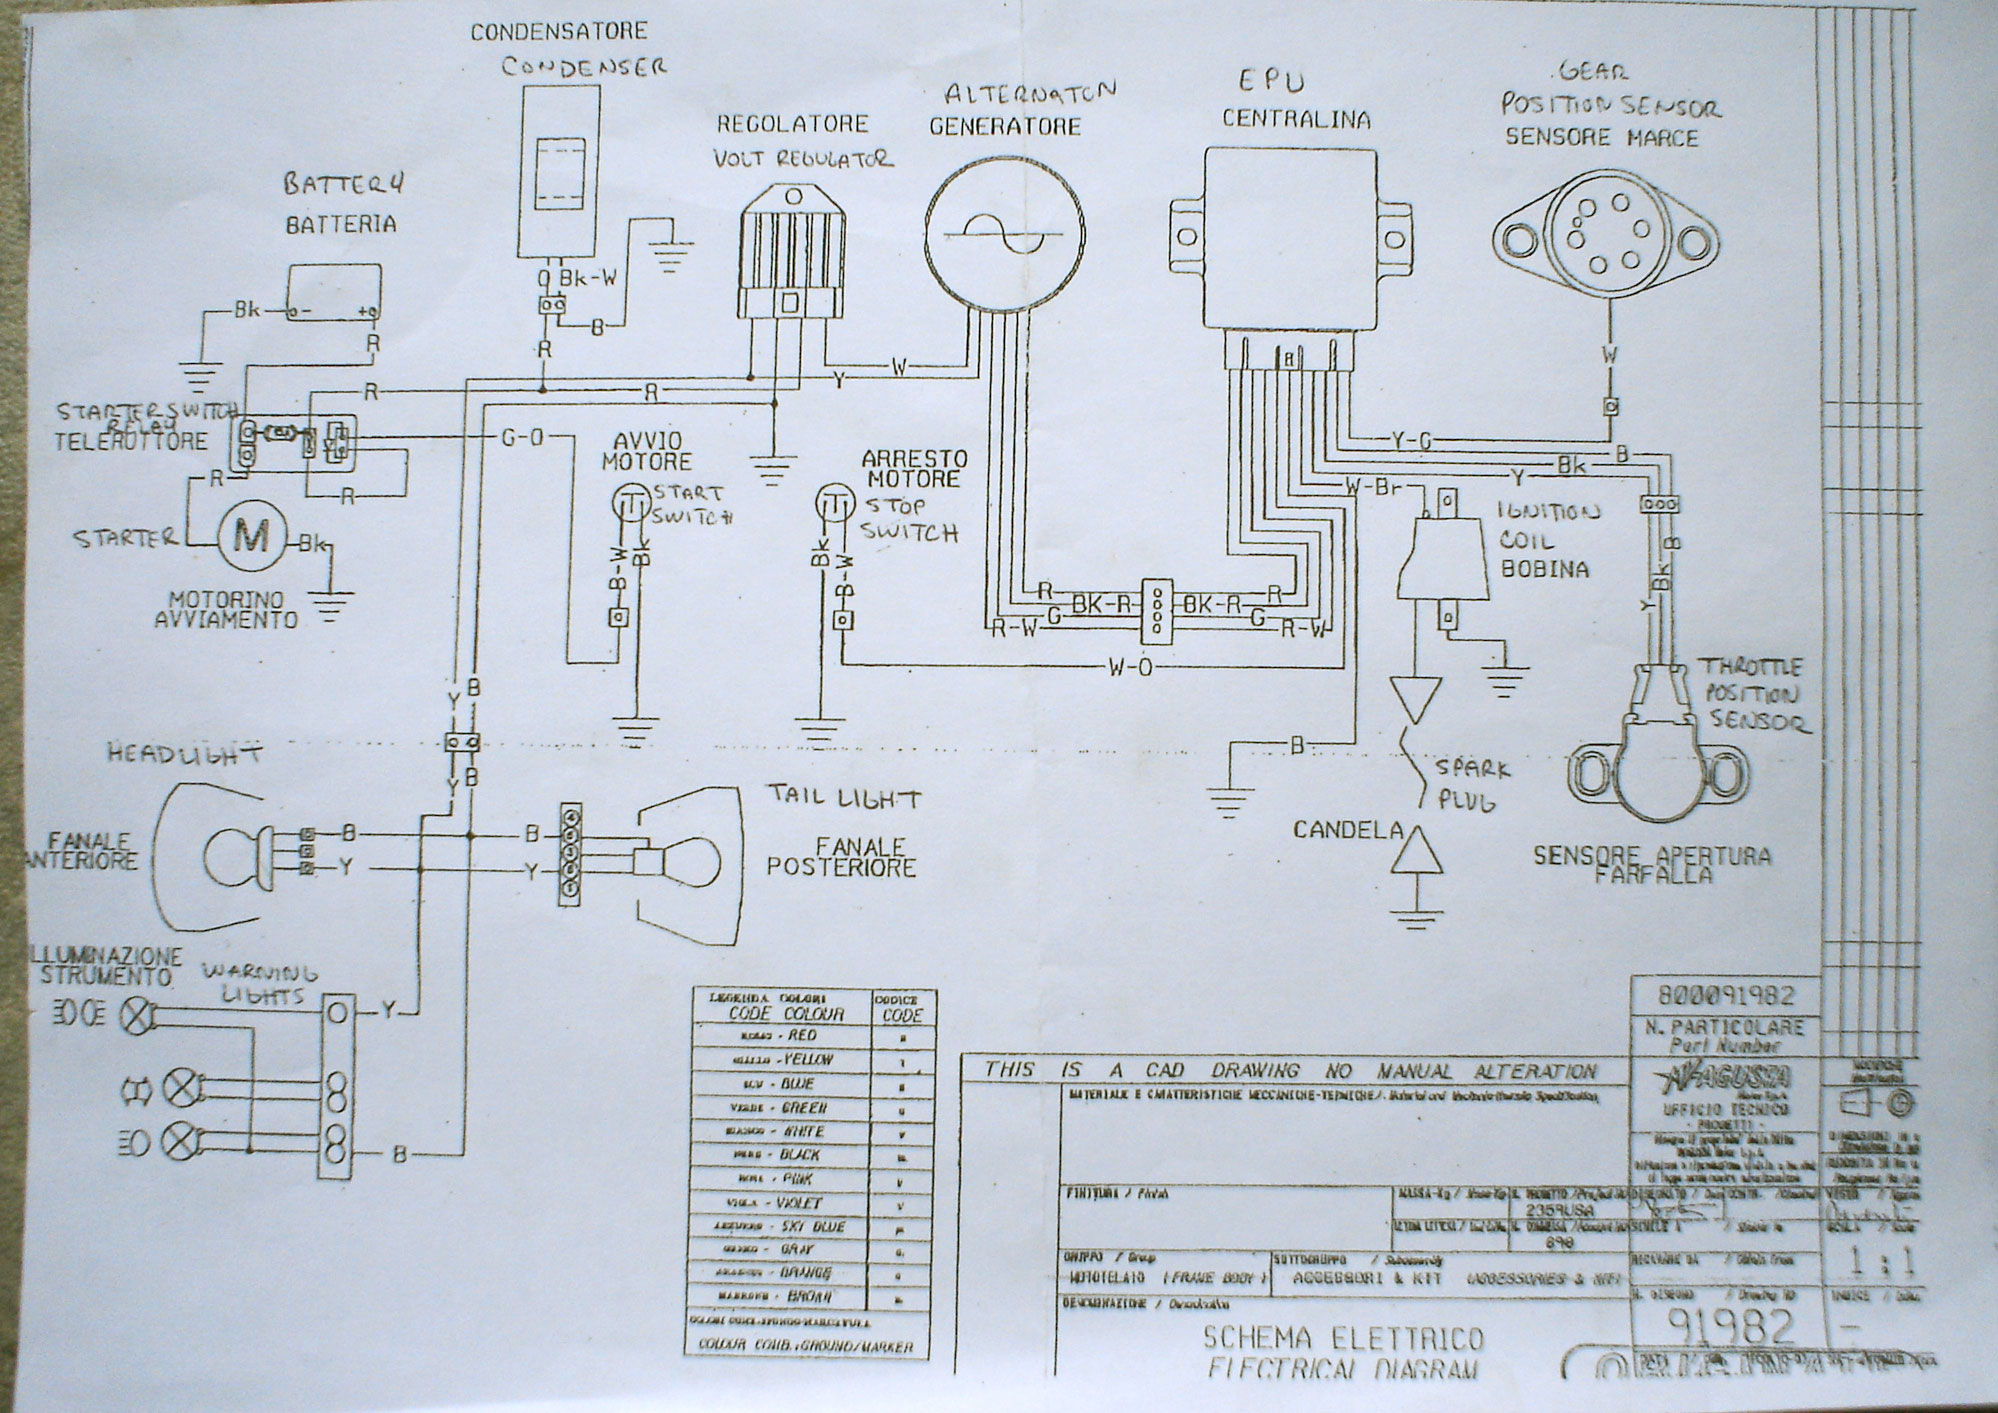 Wiring Diagram Husqvarna Motorcycles Lawn Tractor Husky Smr 510 Simple Electronic Circuits U2022